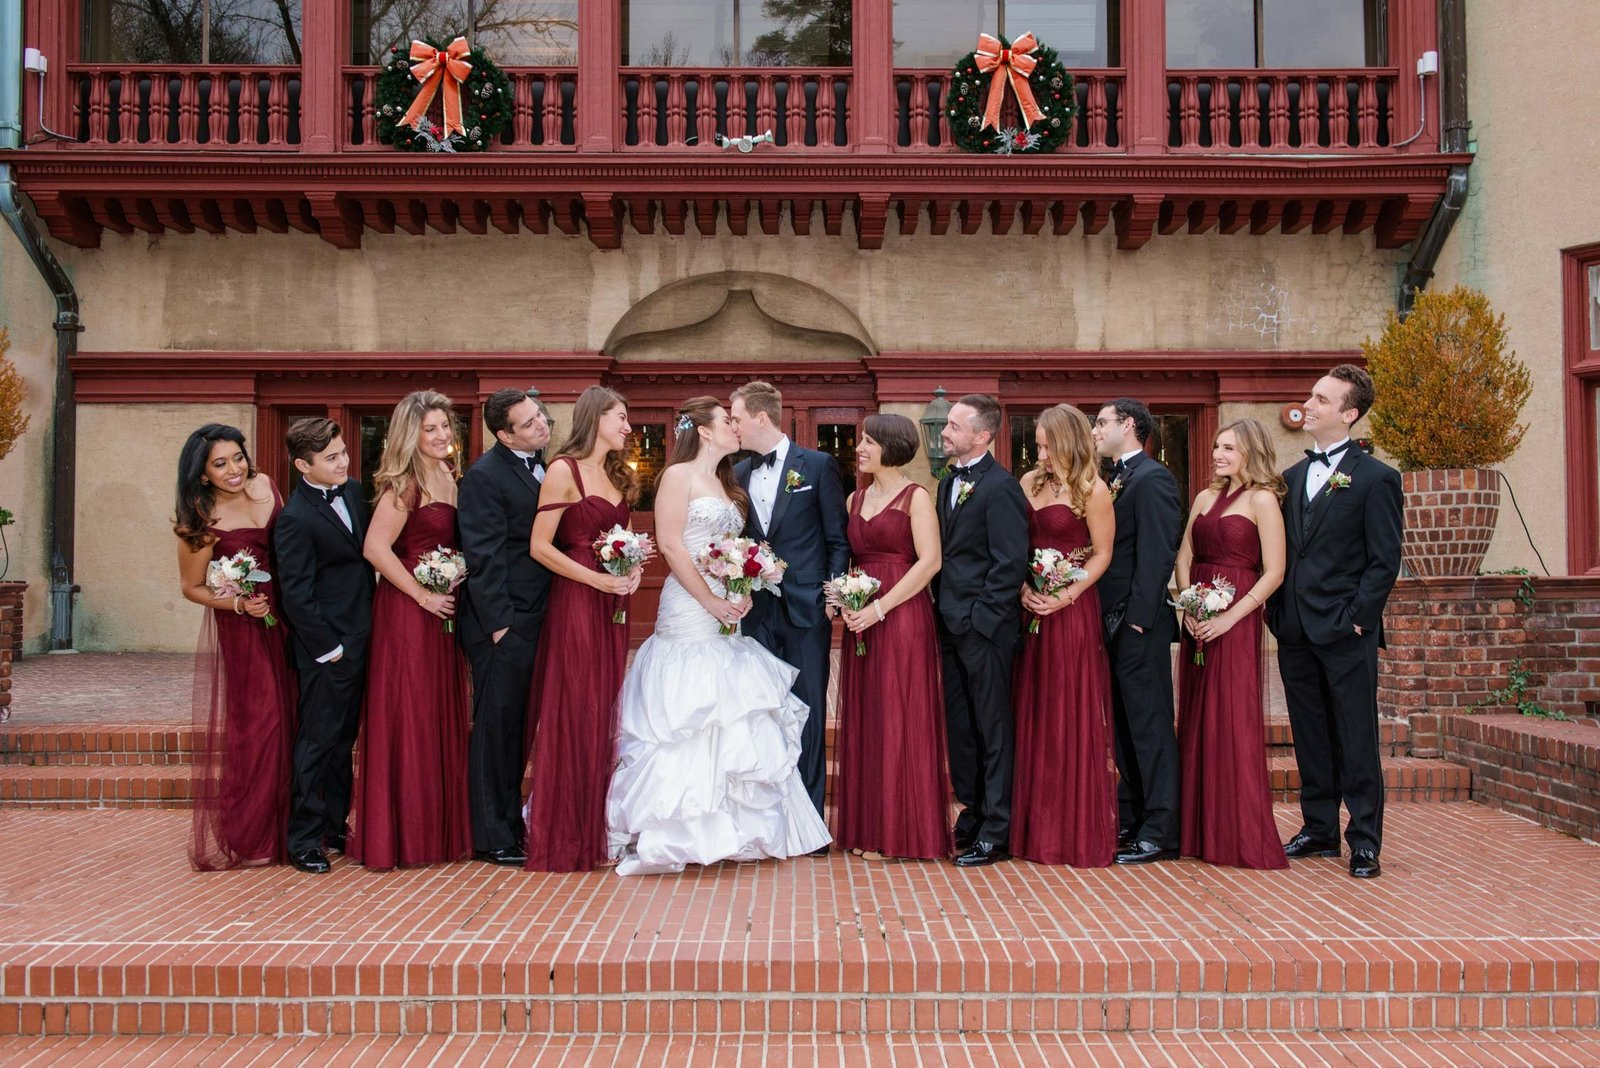 Bridal party photos at Coindre Hall